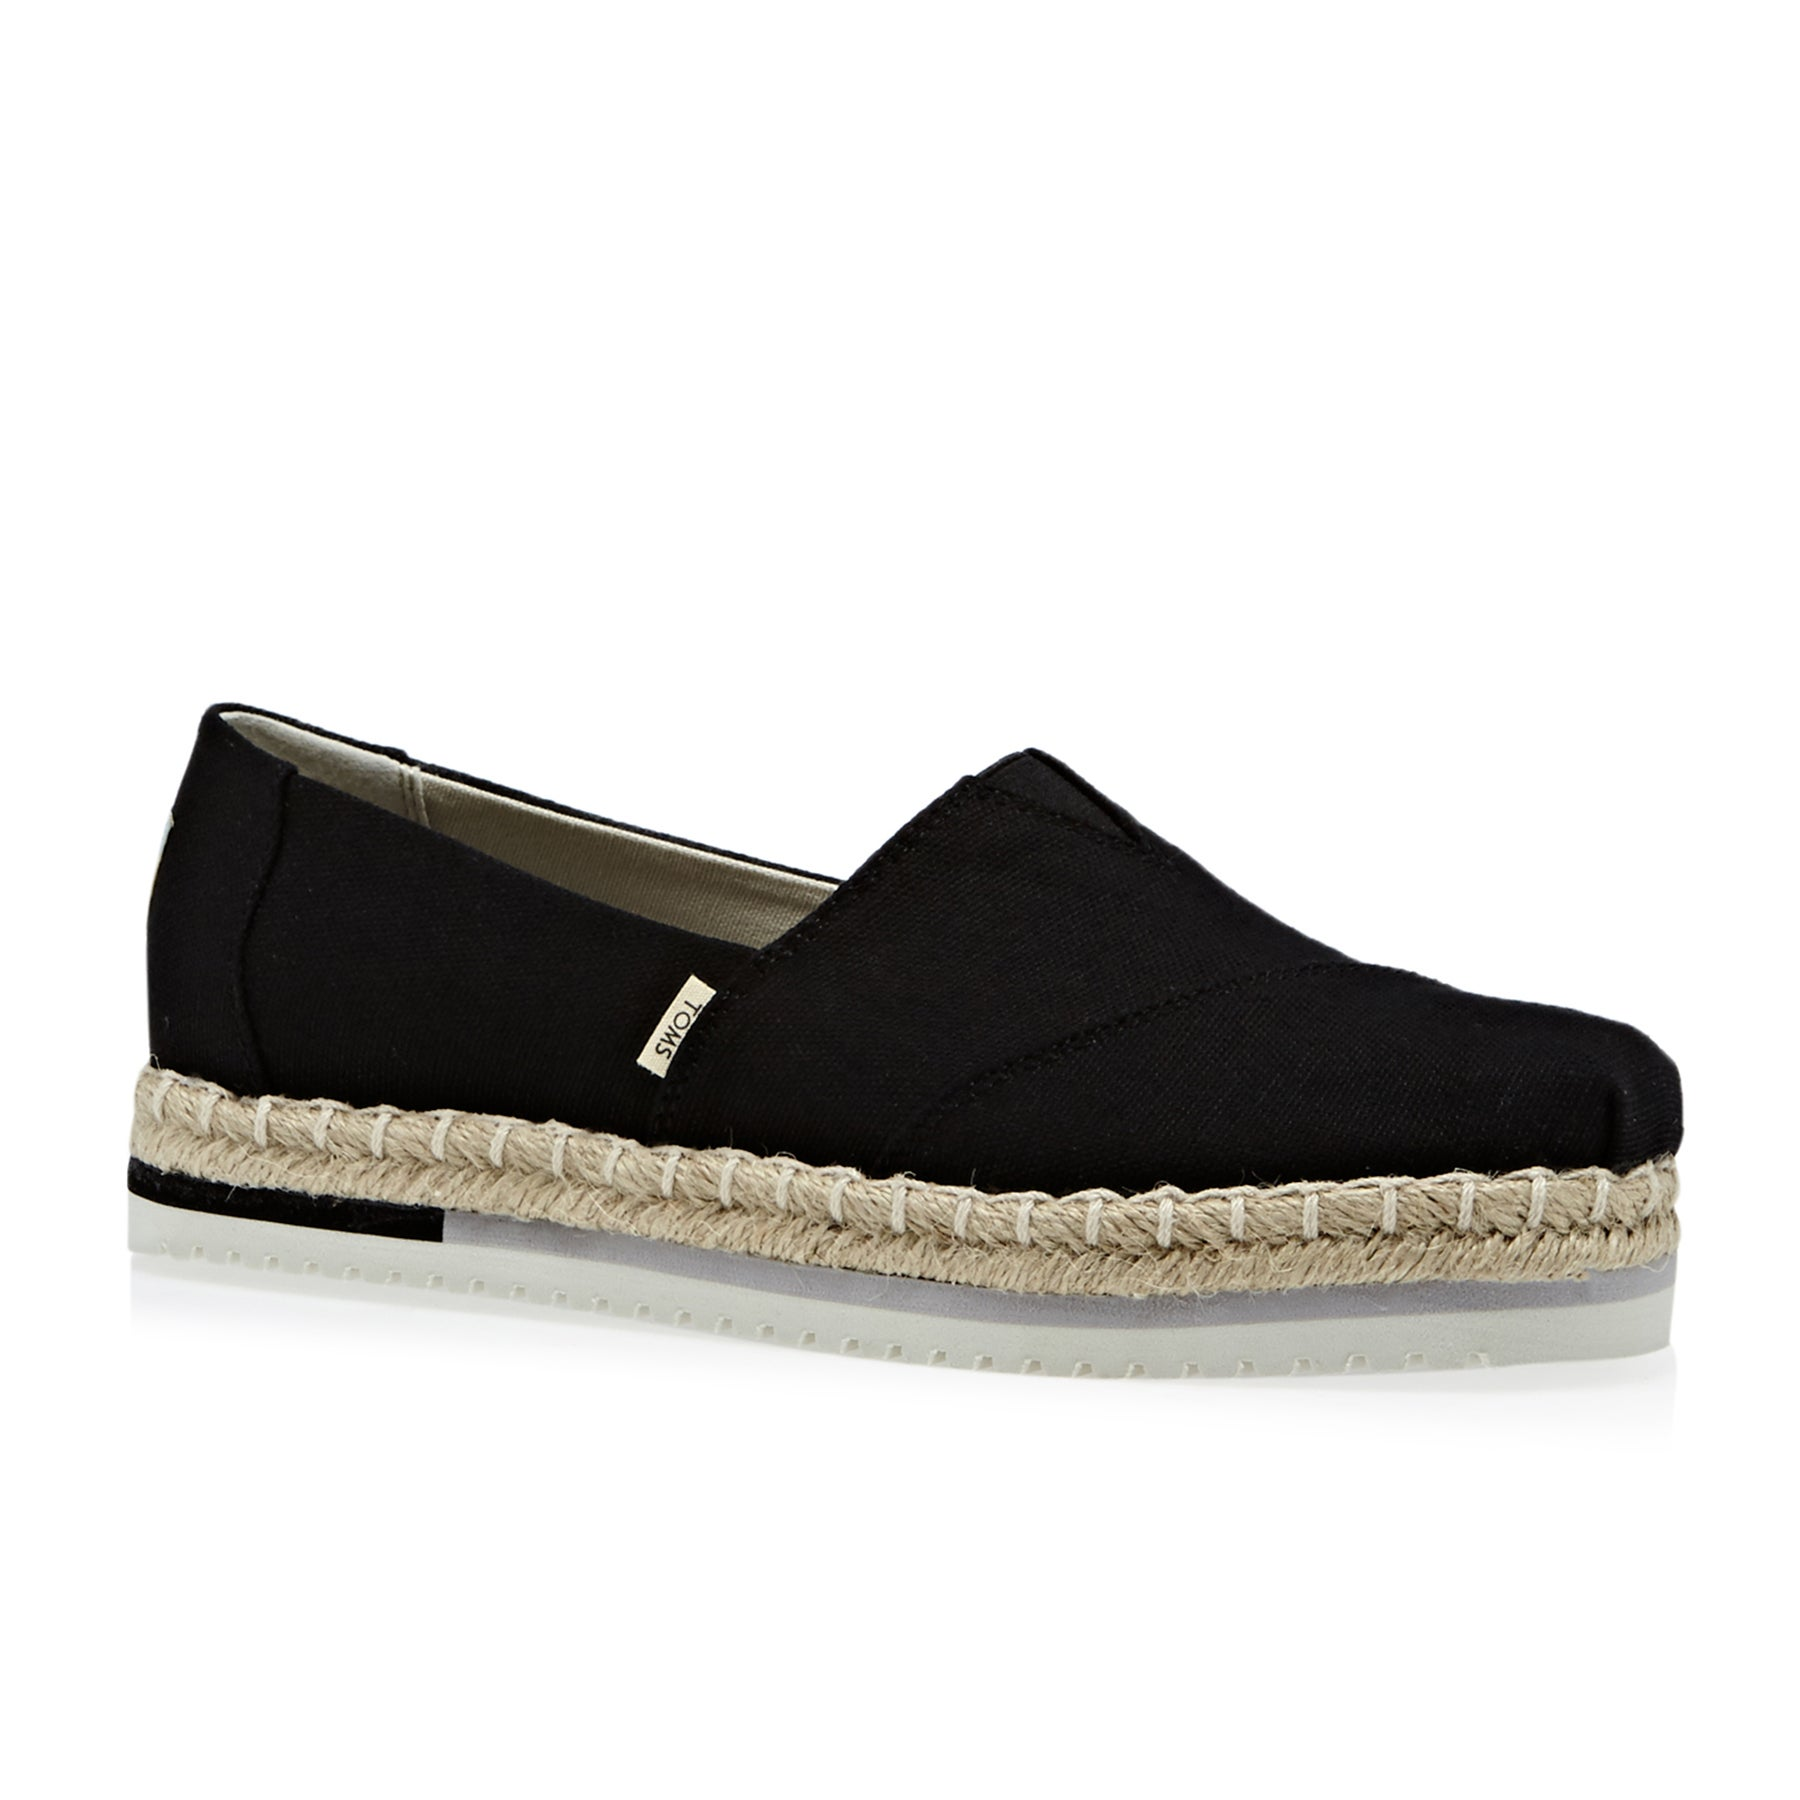 d4bb8598384 Toms Platform Alpargata Womens Slip On Shoes available from Surfdome